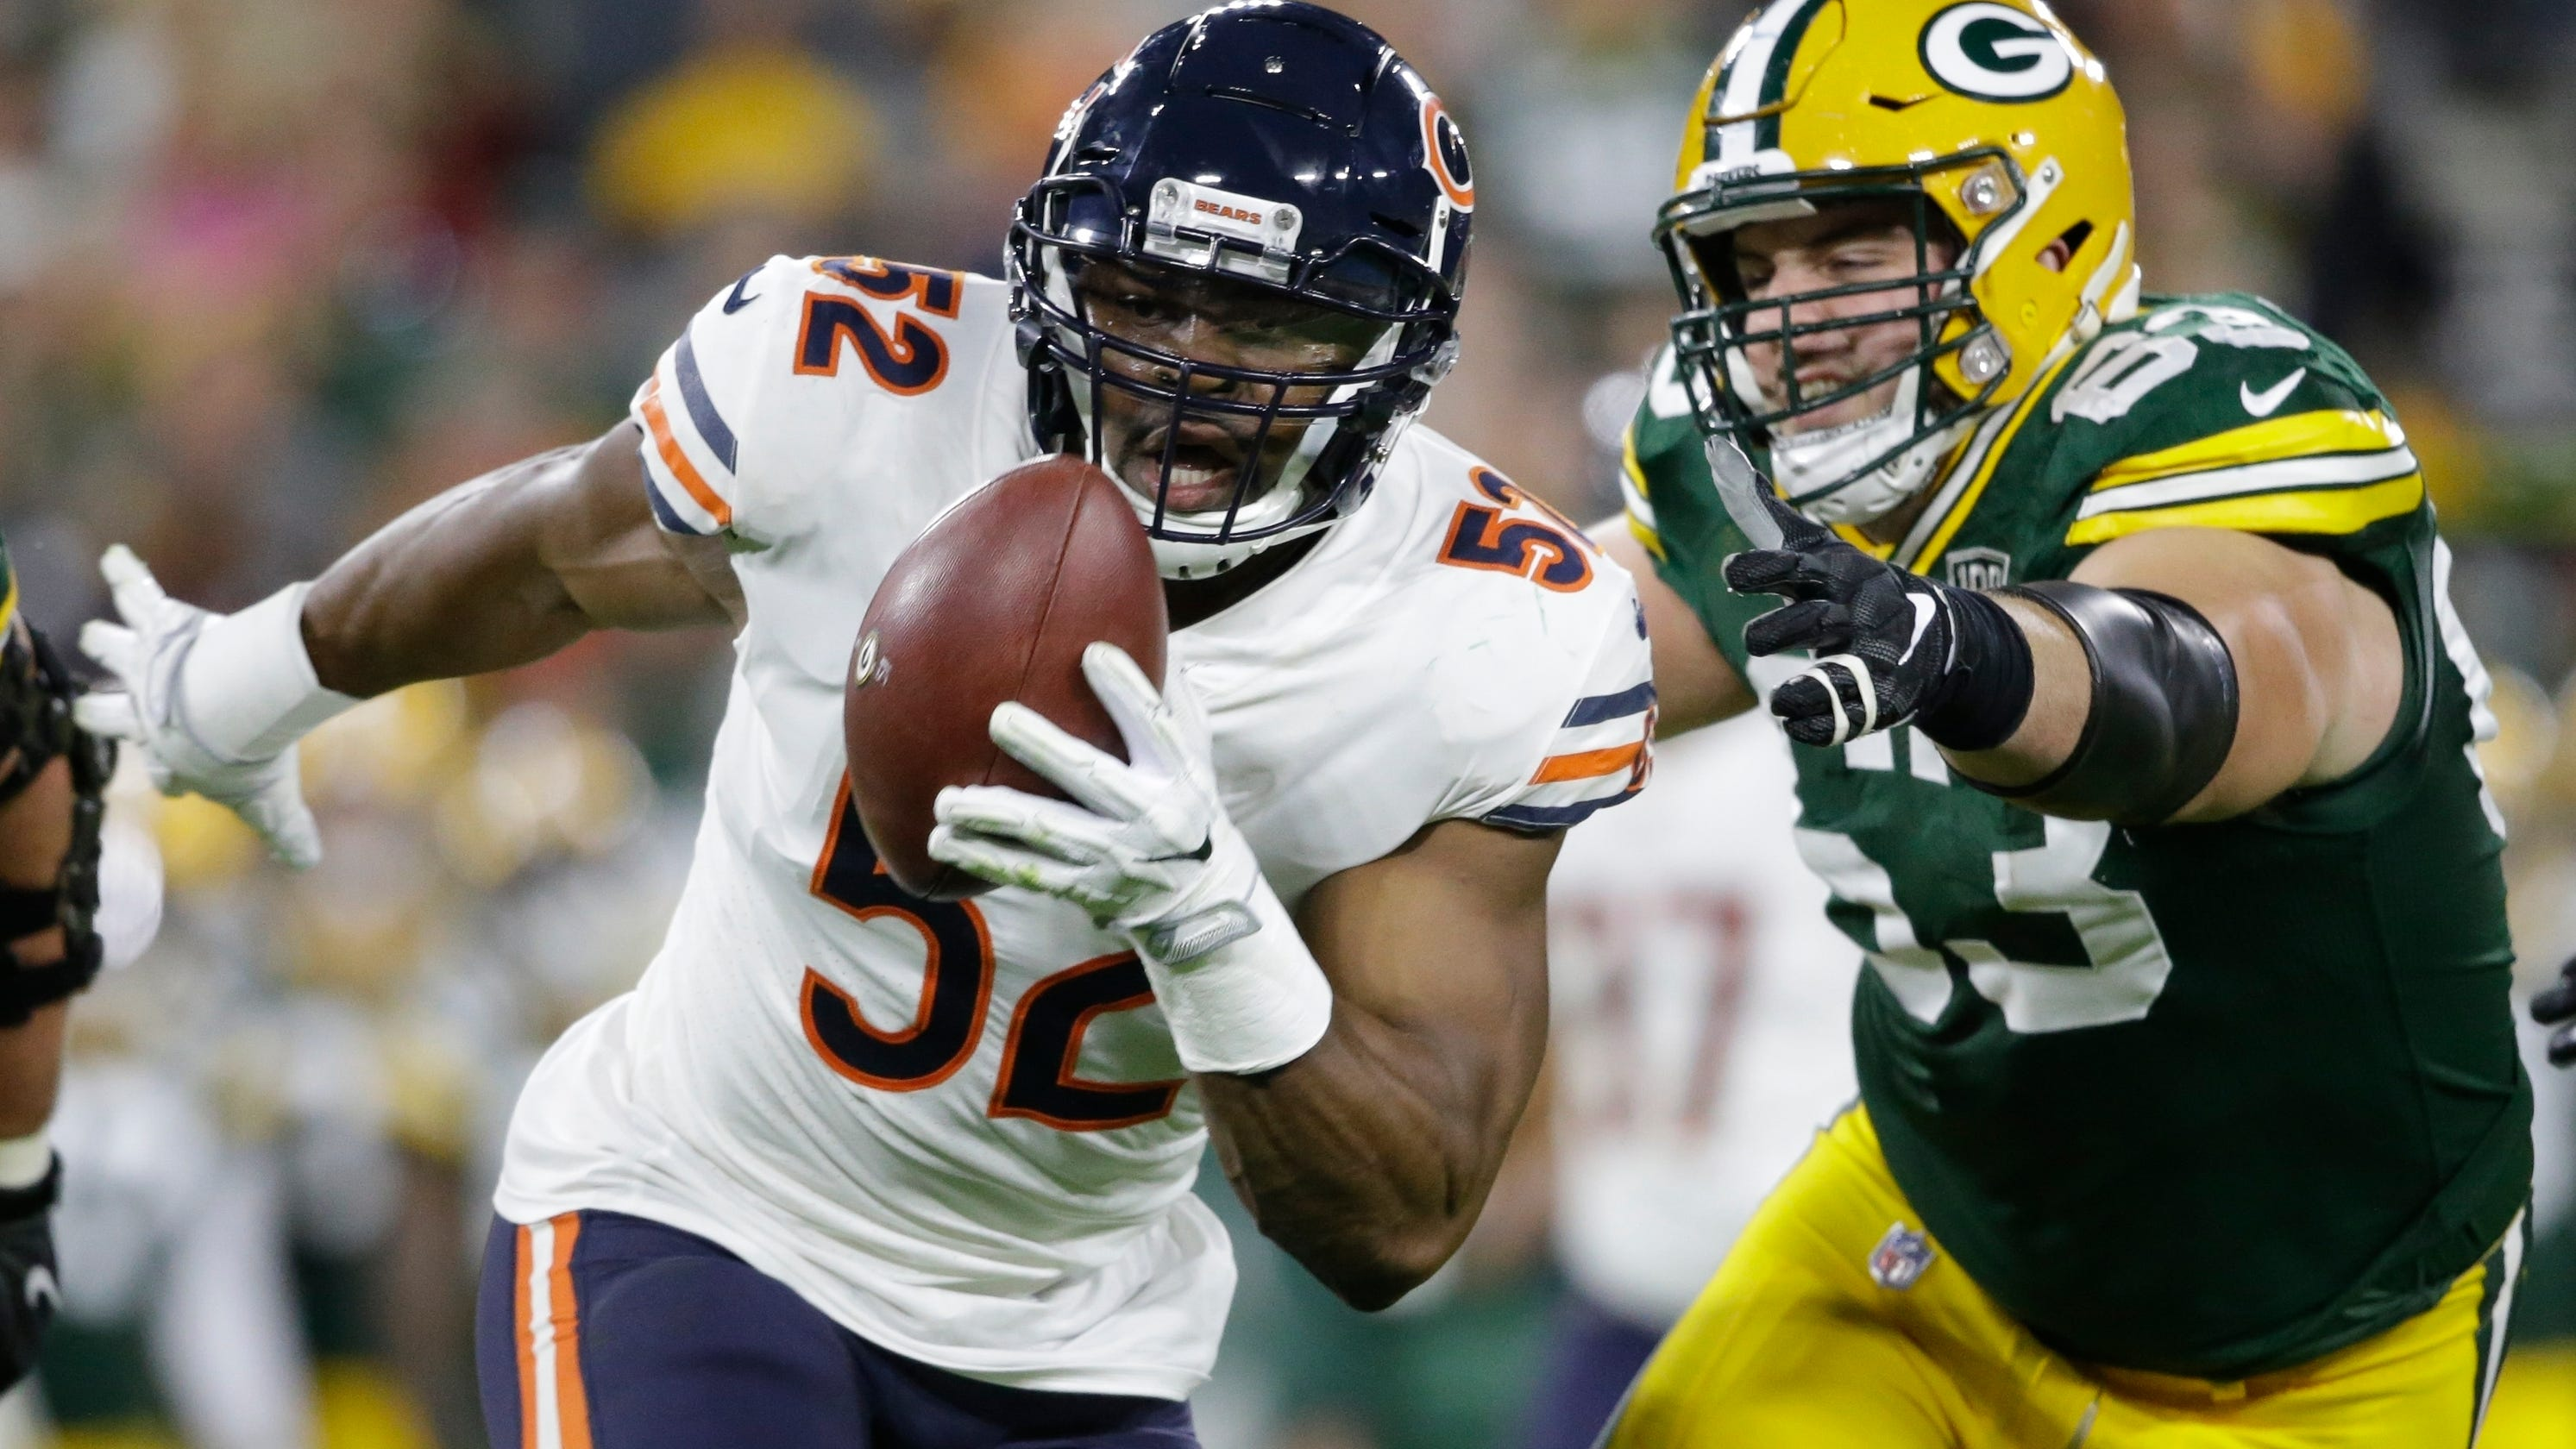 fbfc665be Chicago Bears linebacker Khalil Mack to miss Pro Bowl game